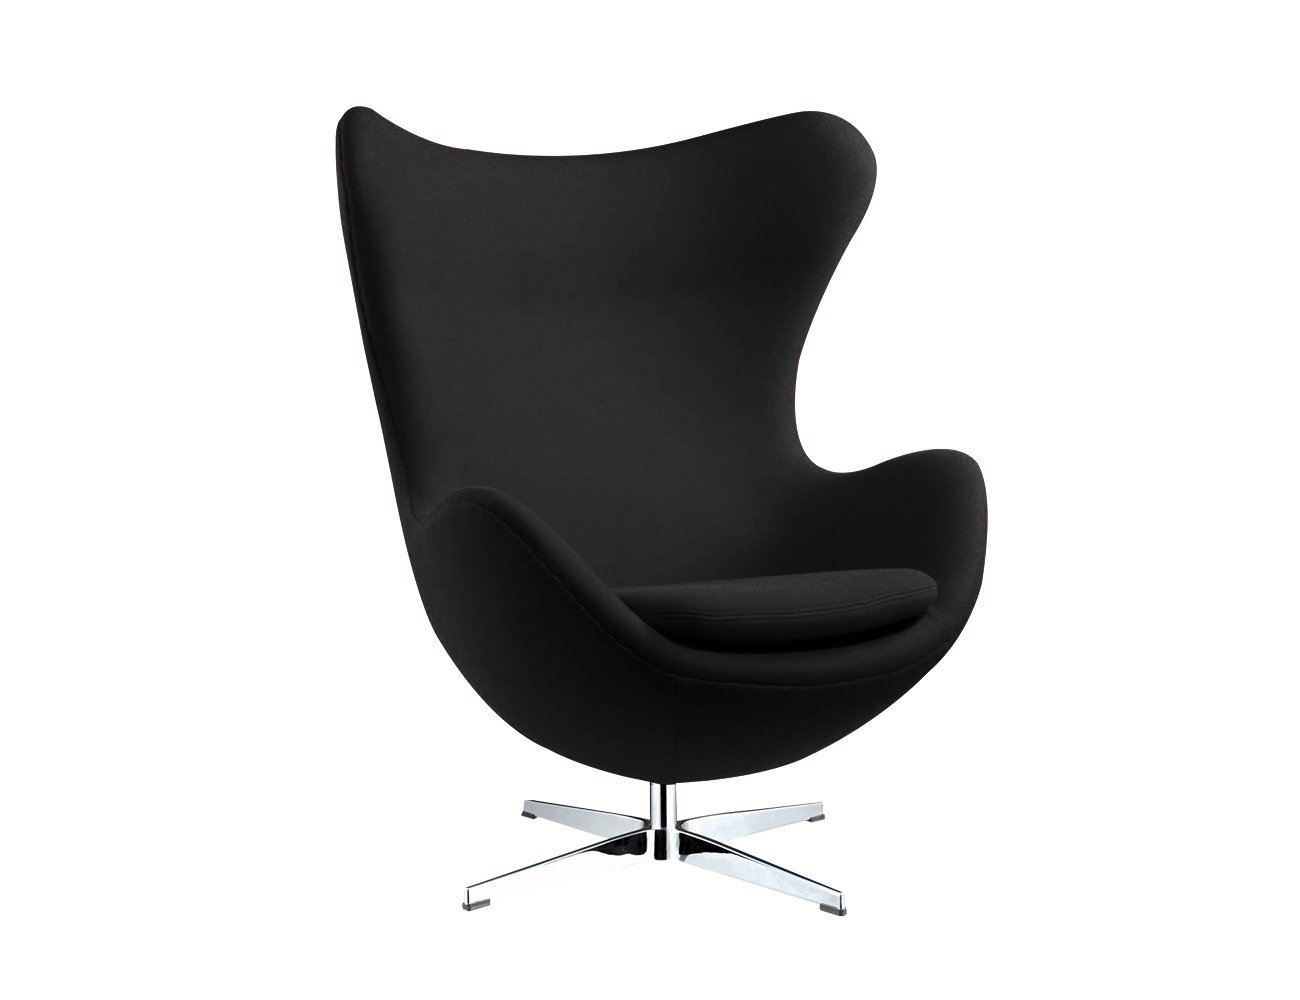 Replica Egg Chair - Black - Fabric